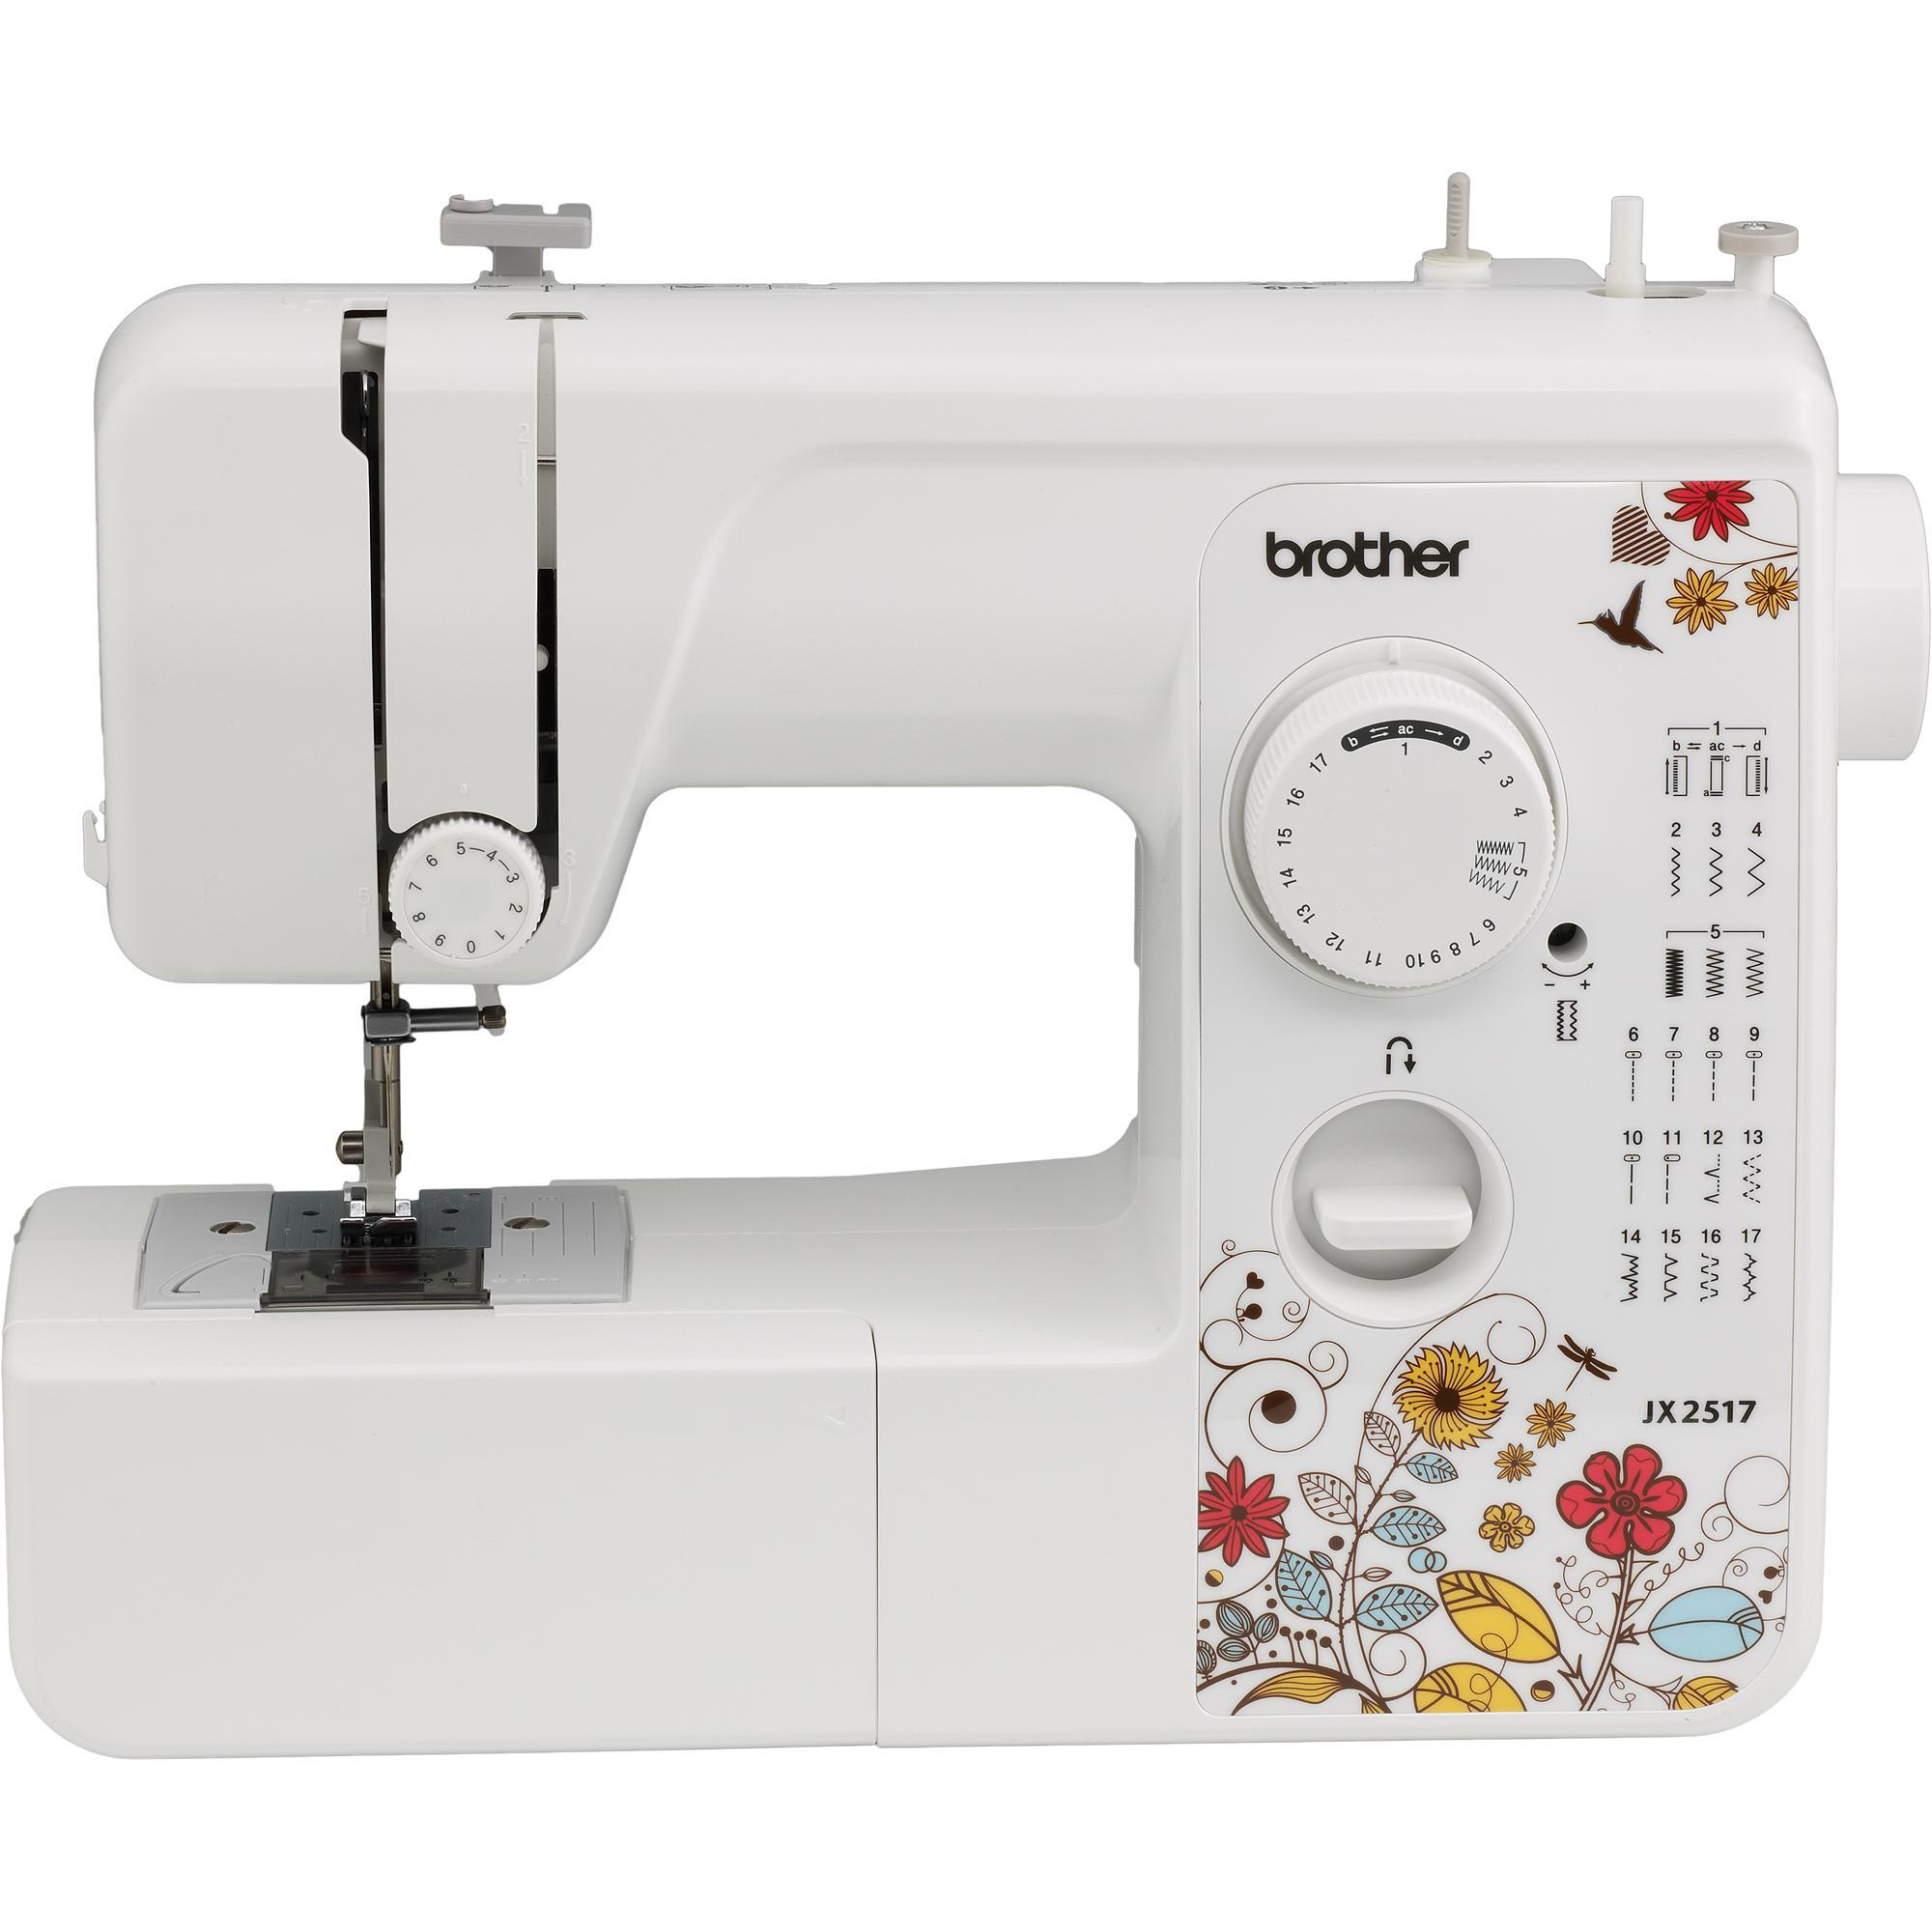 Brother 17 Stitch Sewing Machine Just $69.88! Down From $149.00!